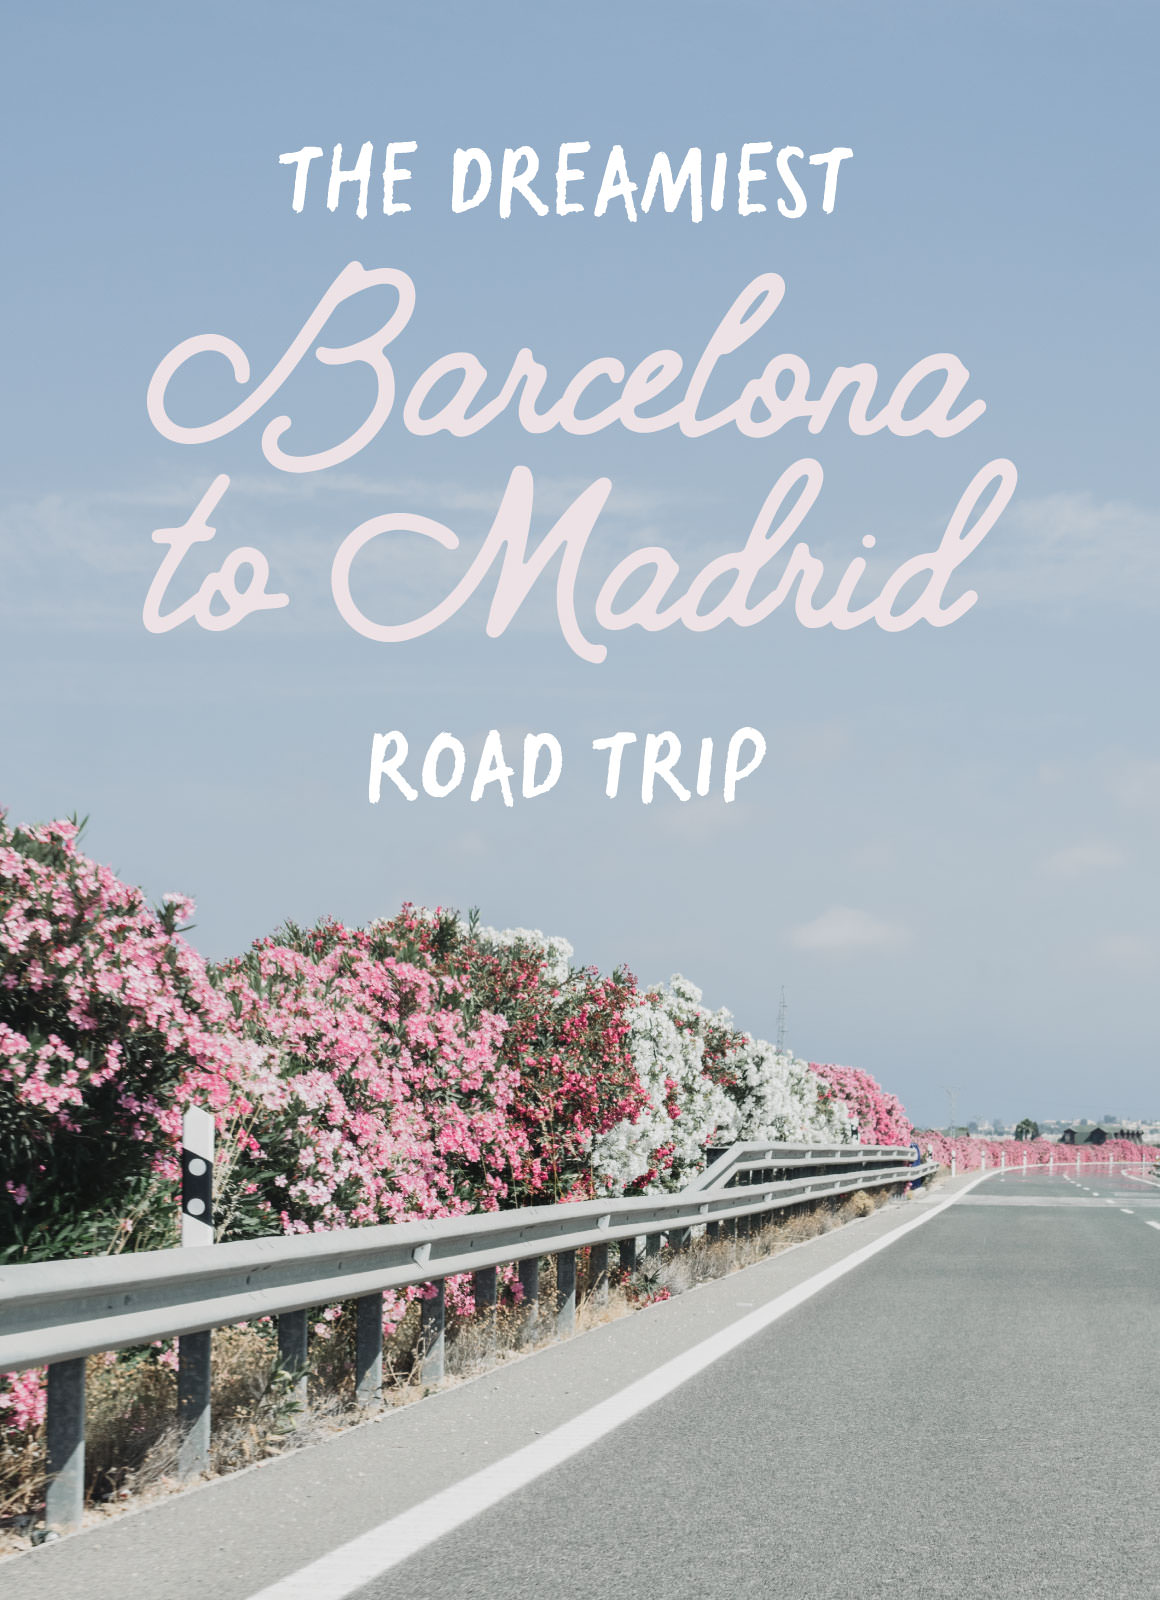 The Dreamiest Barcelona to Madrid Road Trip